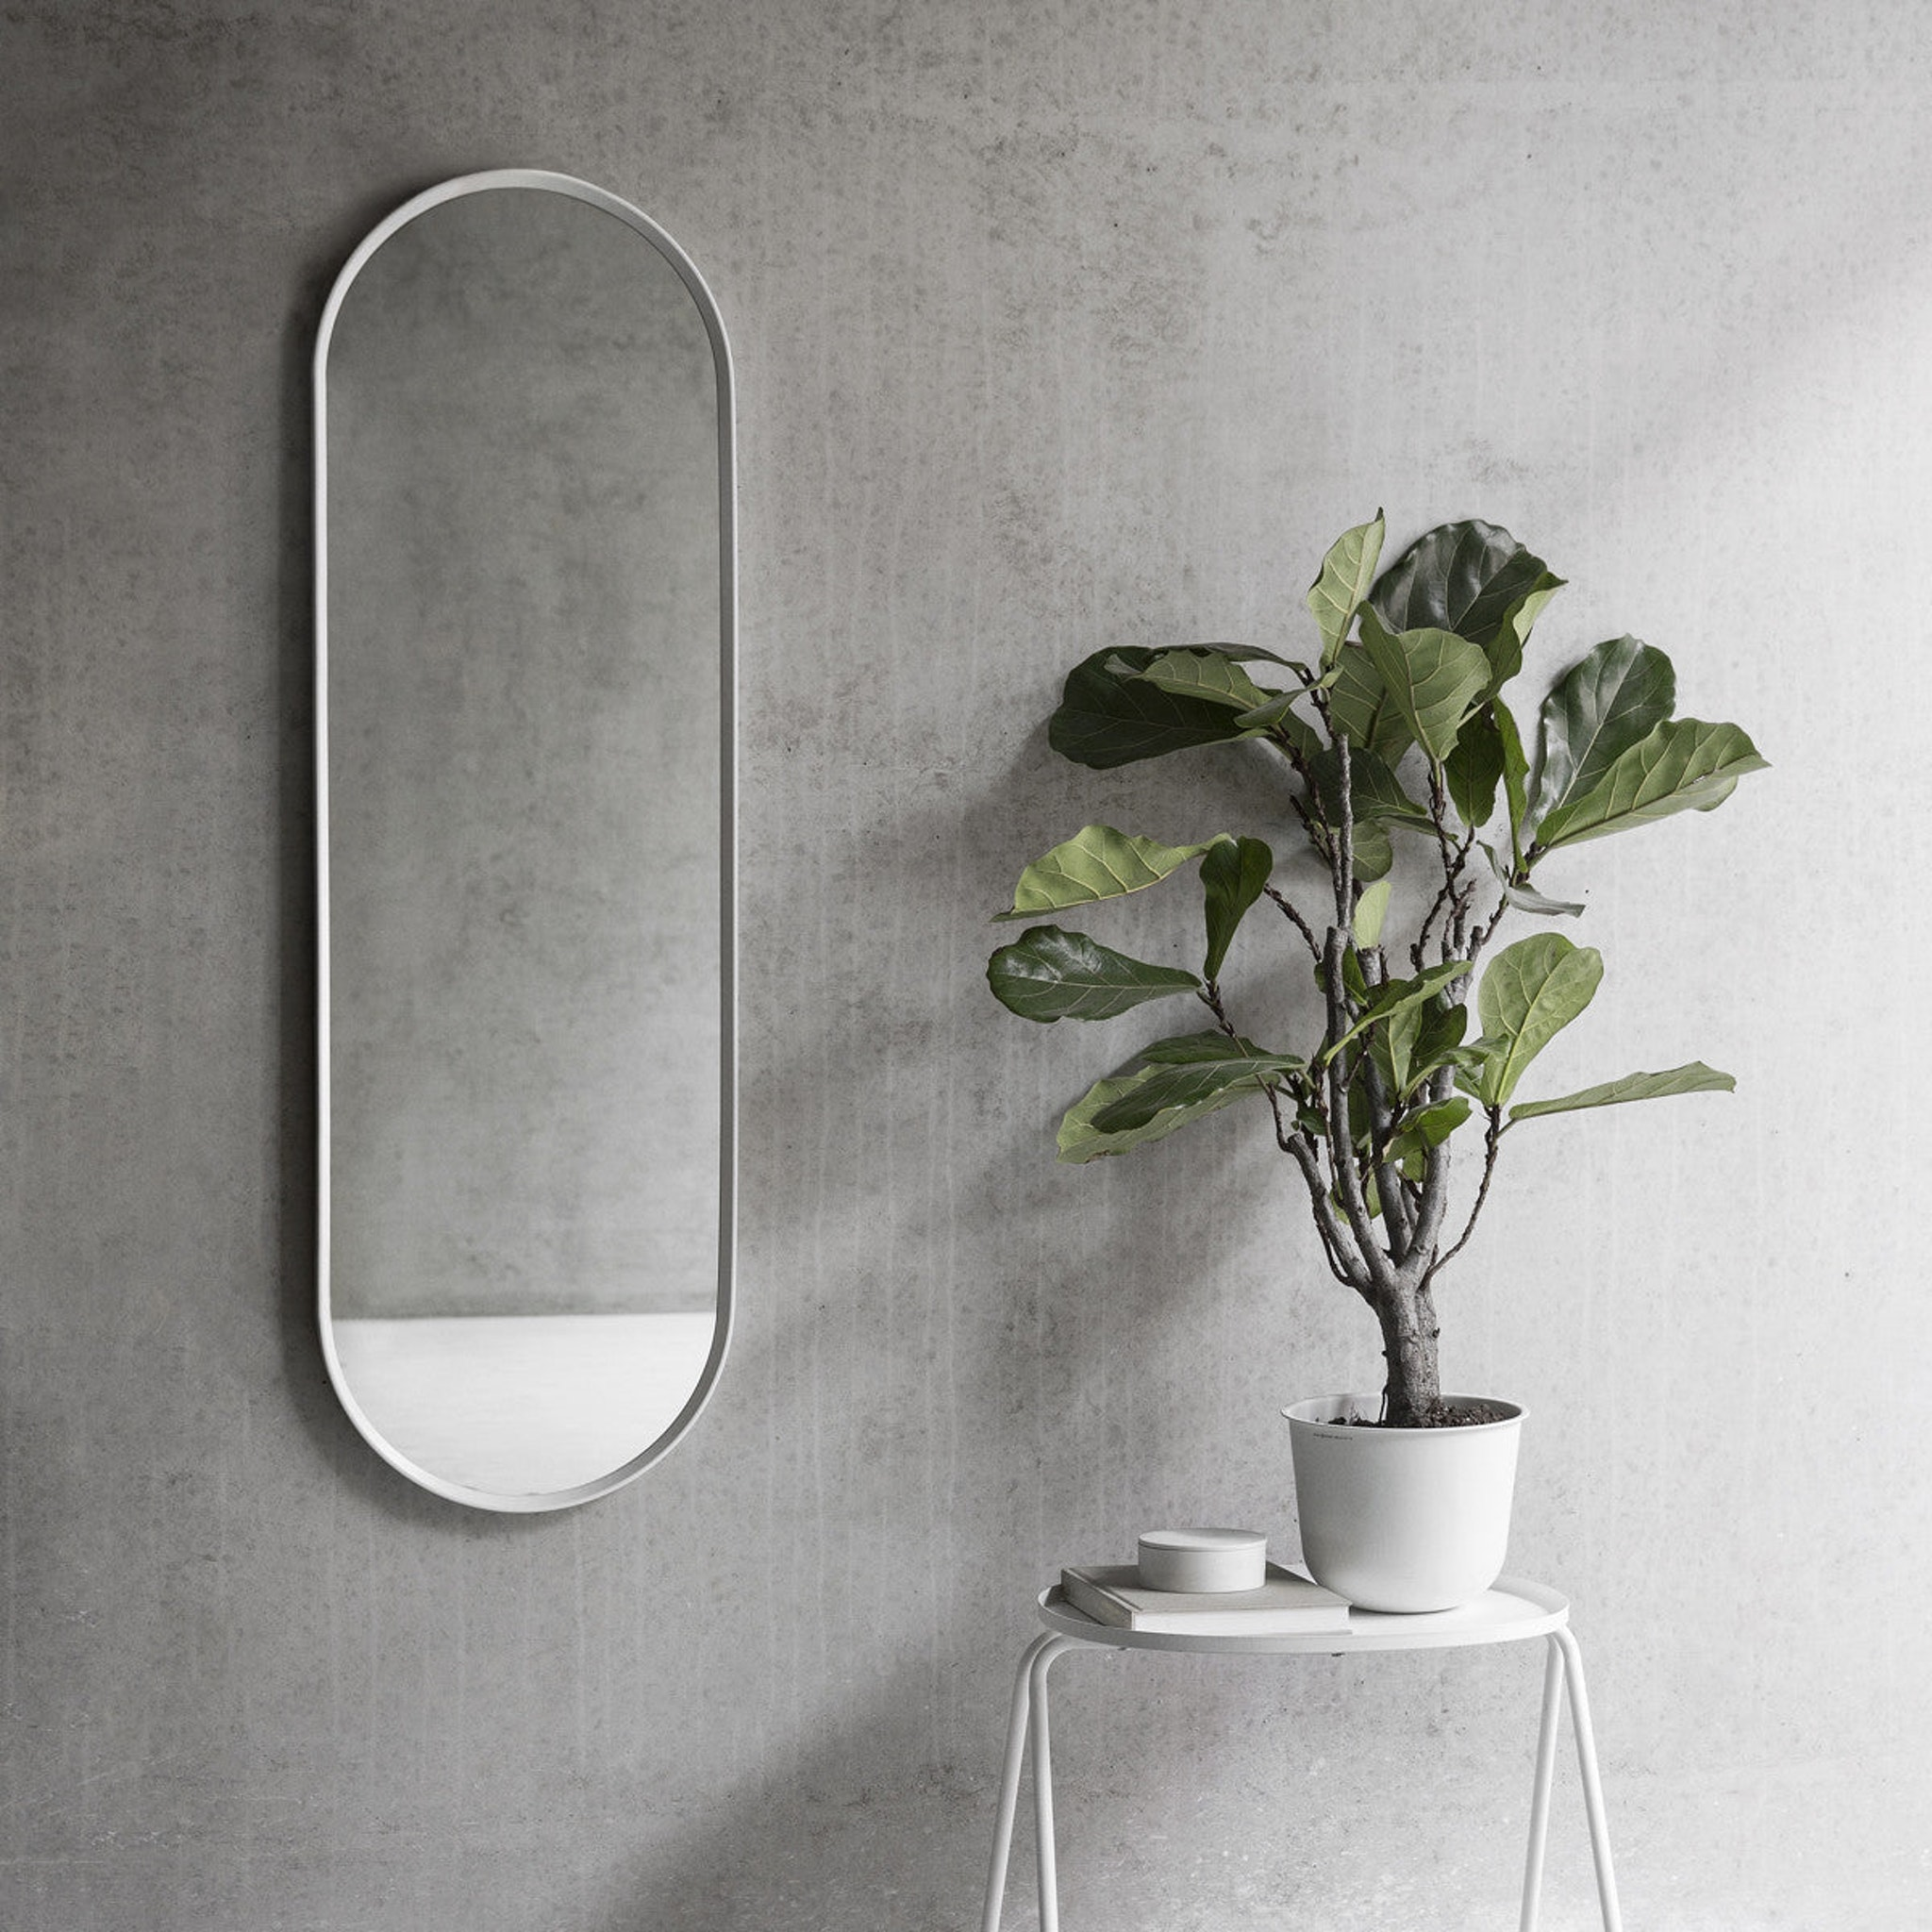 Norm Oval Wall mirror by Norm Architects